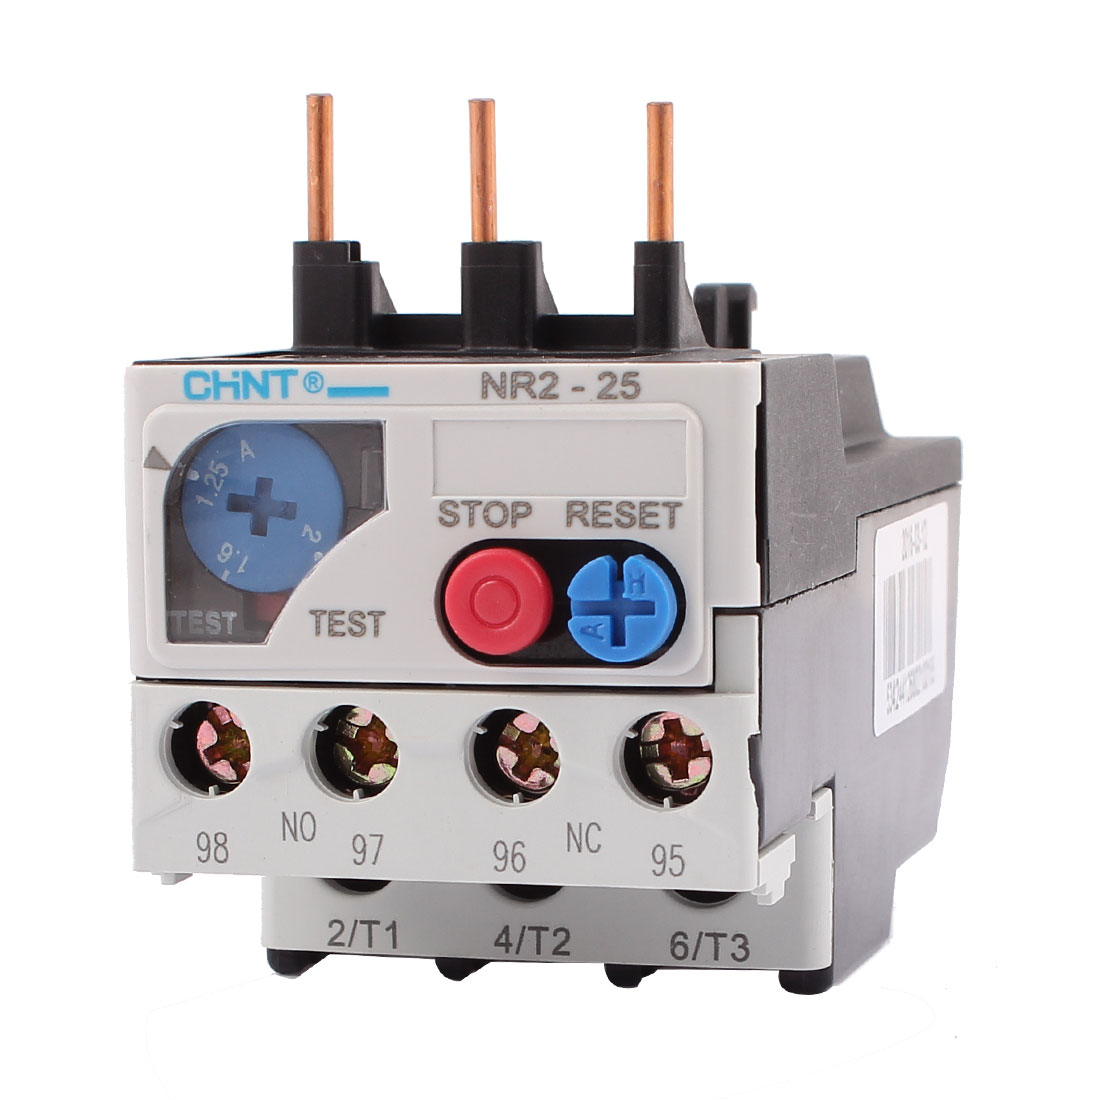 NR2-25 1.25-2A 3 Pole 1 NO 1 NC Motor Protector Electric Thermal Overload Relay